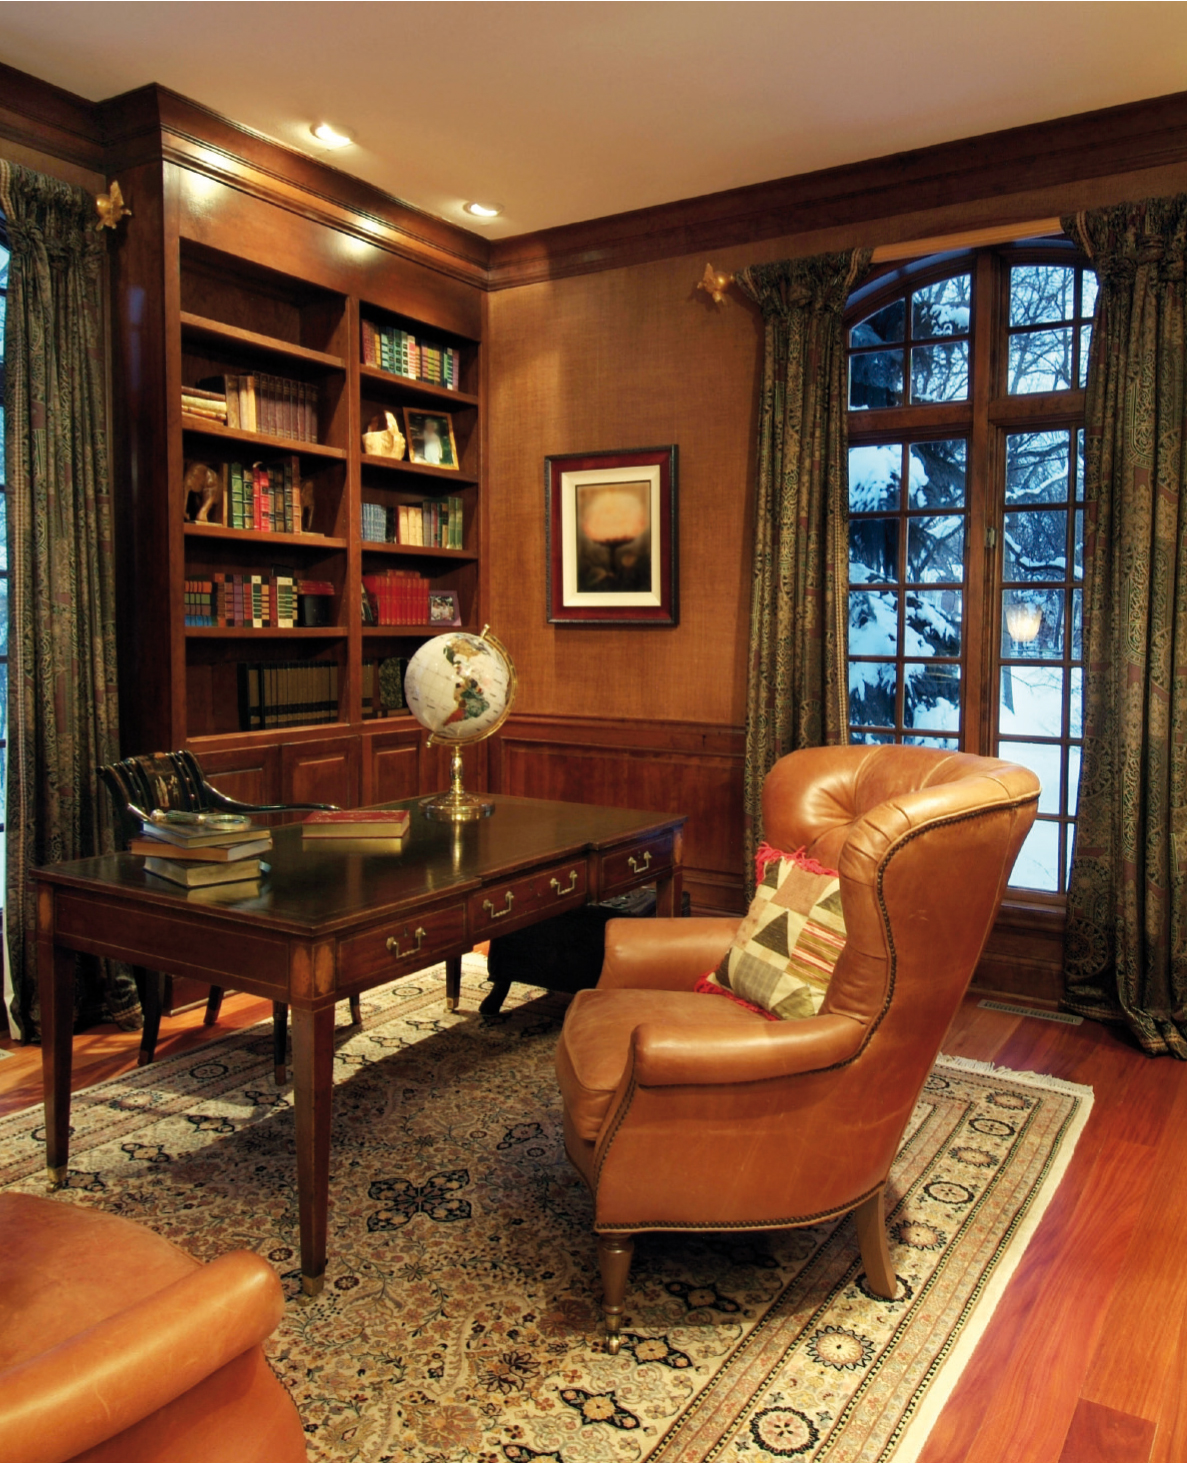 The gentleman s room creating a masculine aesthetic central virginia home magazine - Home office design ...